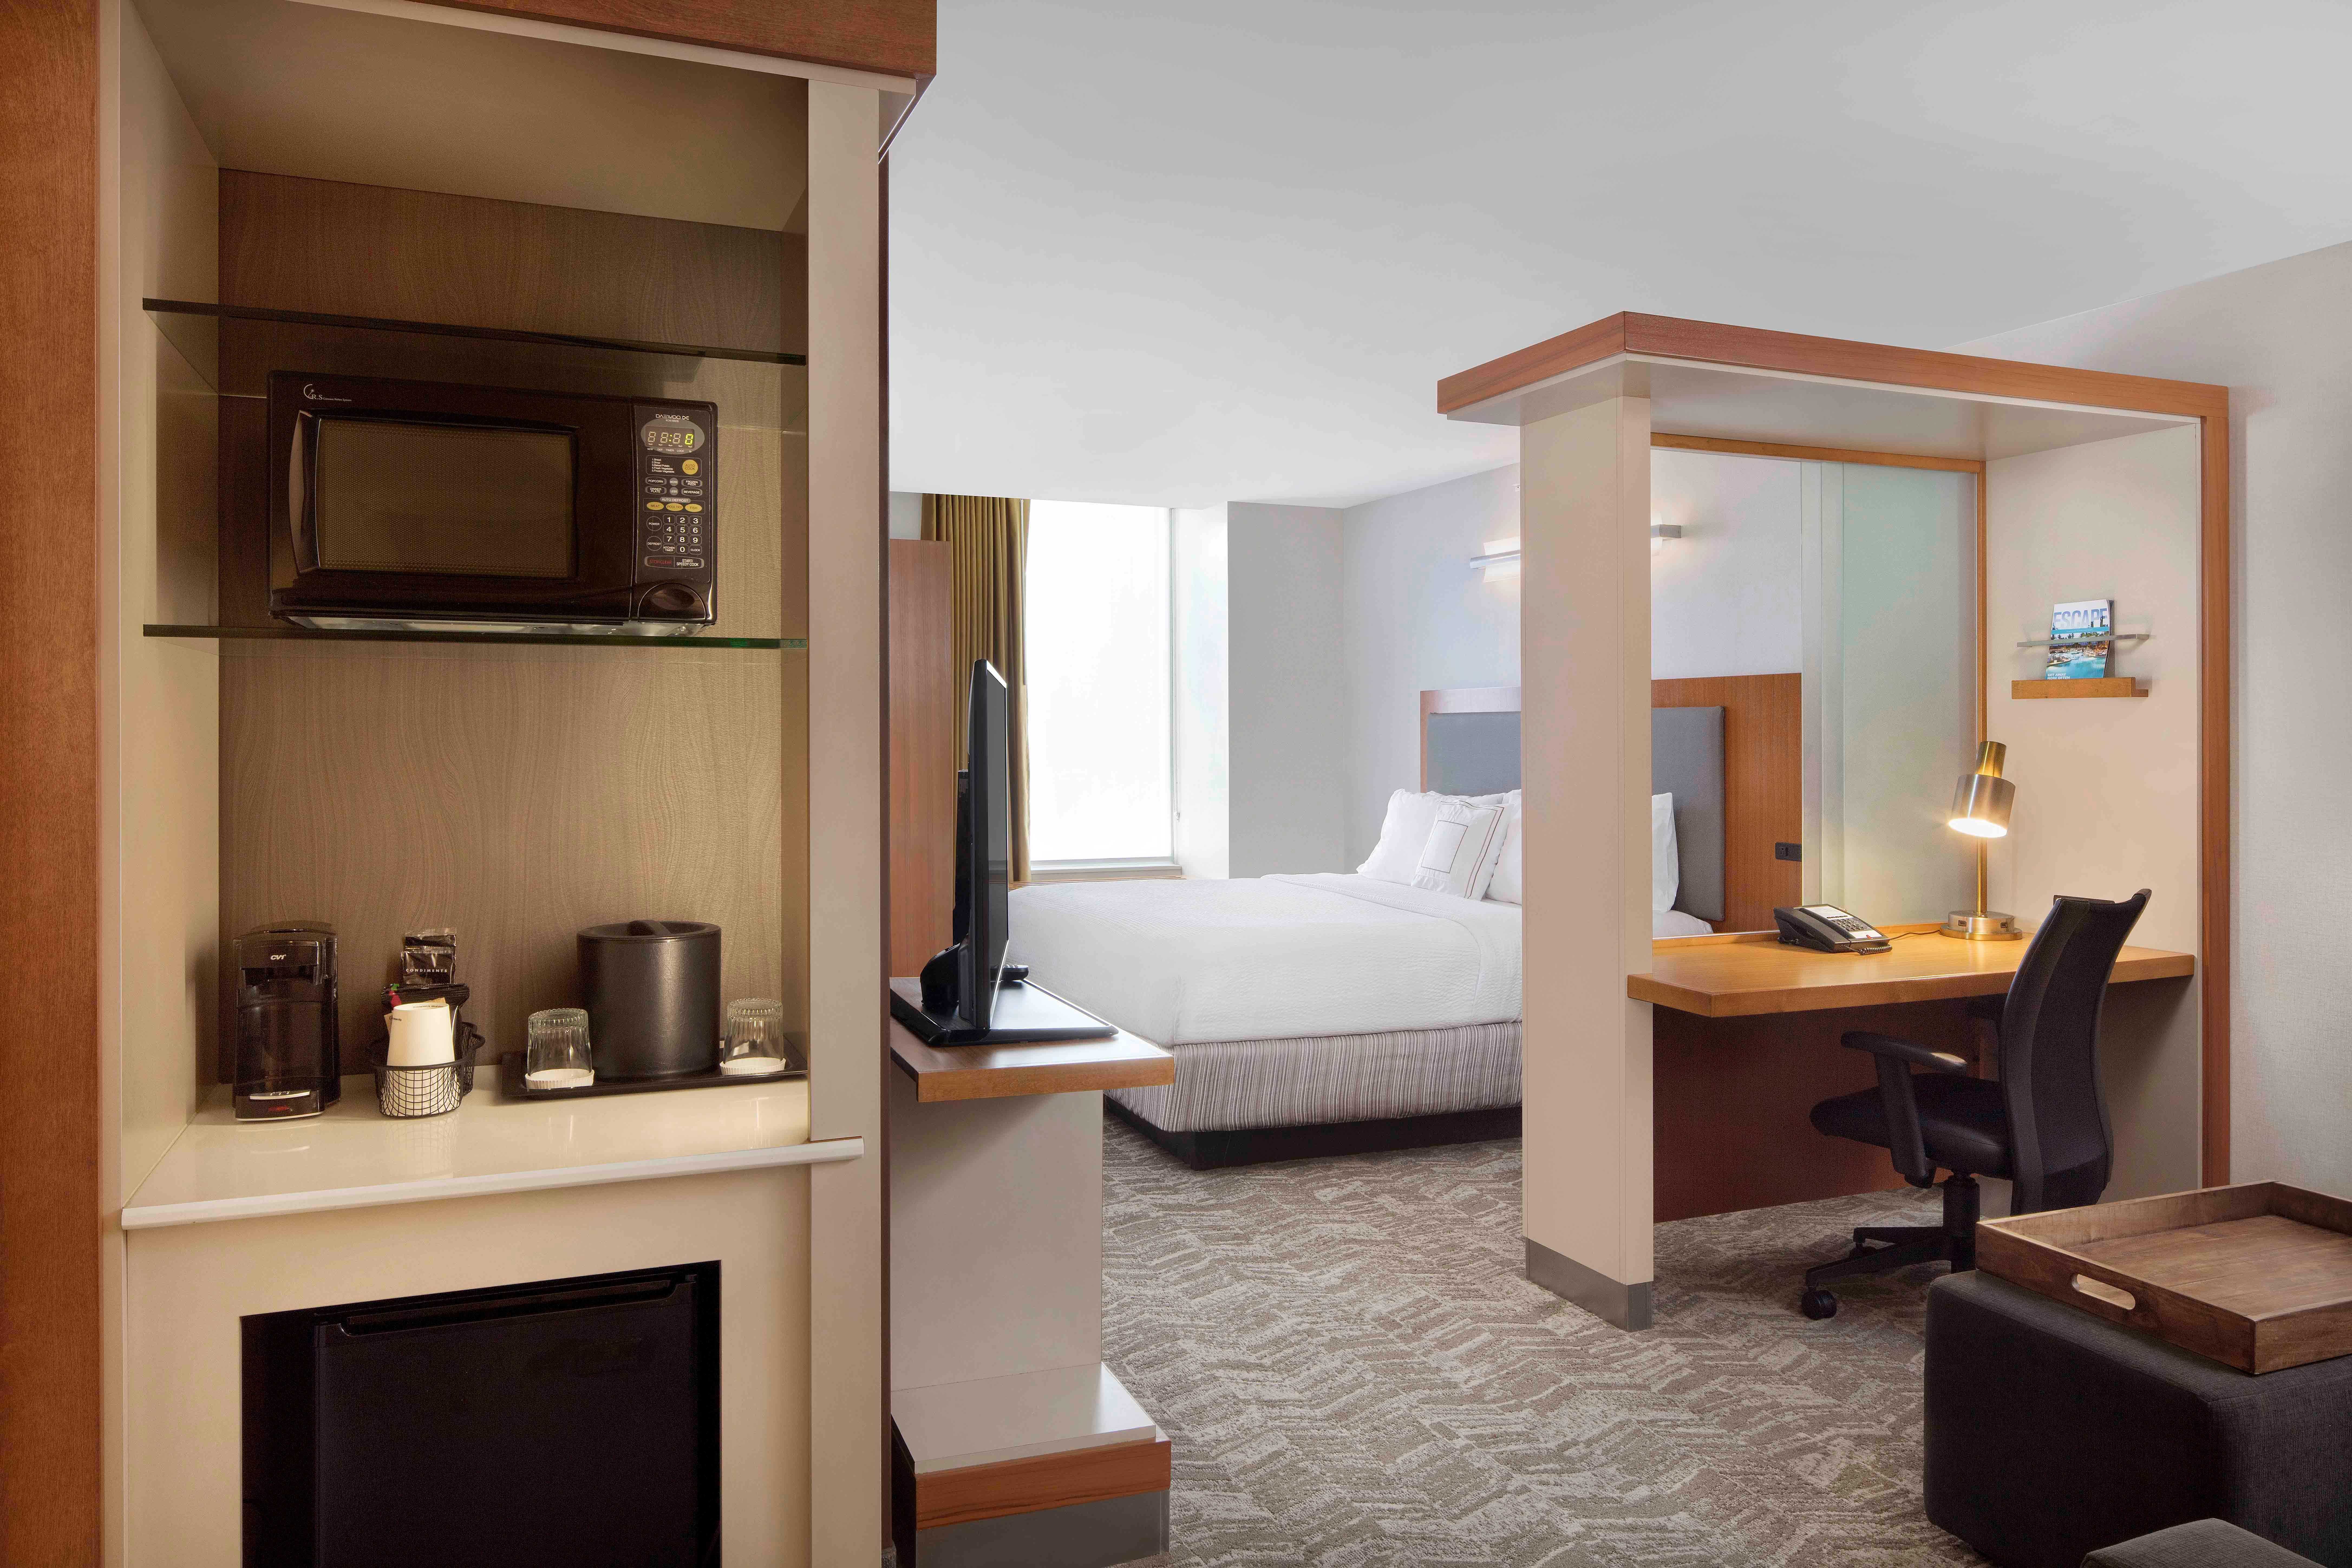 SpringHill Suites by Marriott Indianapolis Downtown image 14